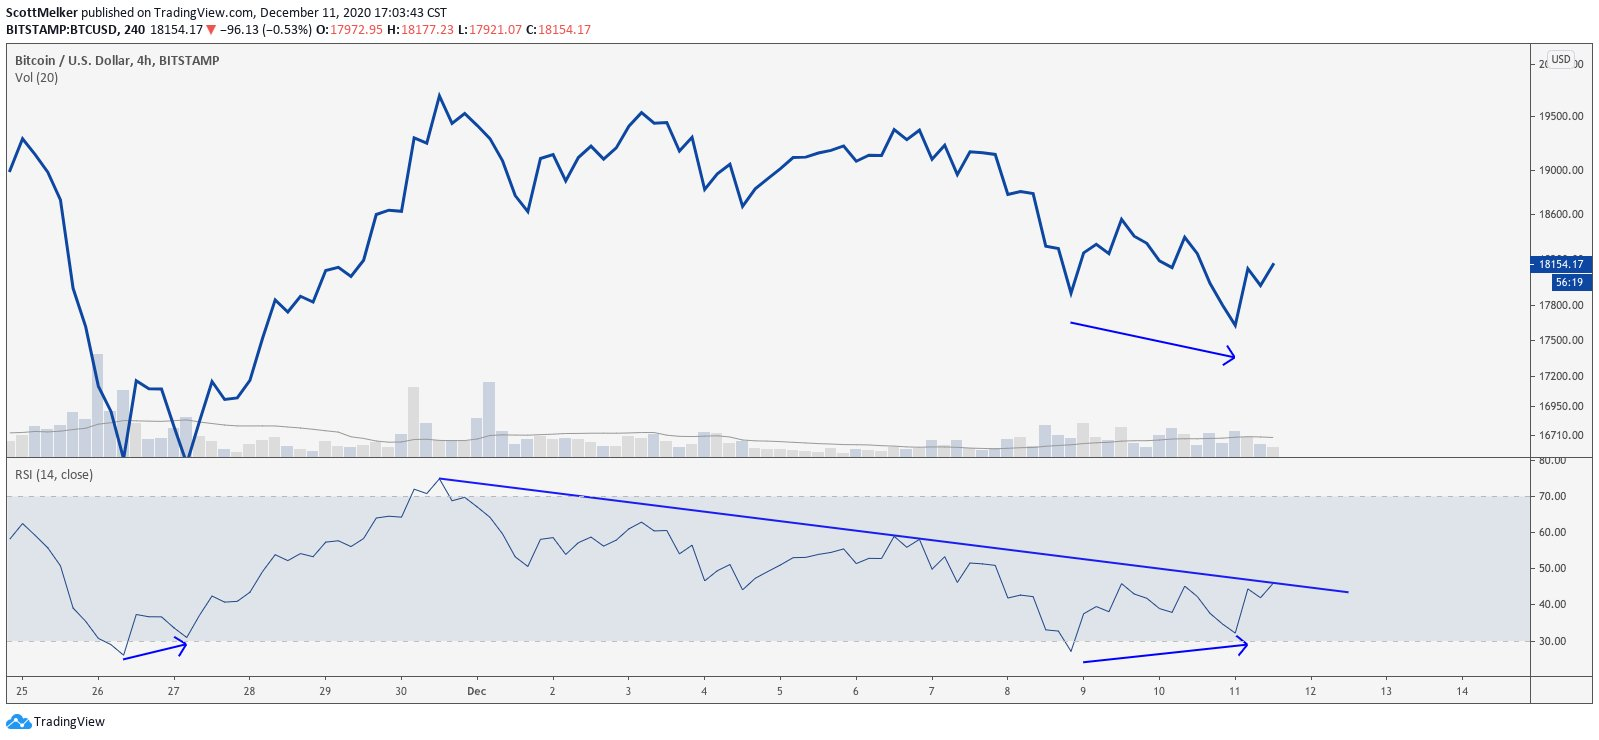 Bullish divergence, TD9 'buy signal' align for a new Bitcoin relief rally